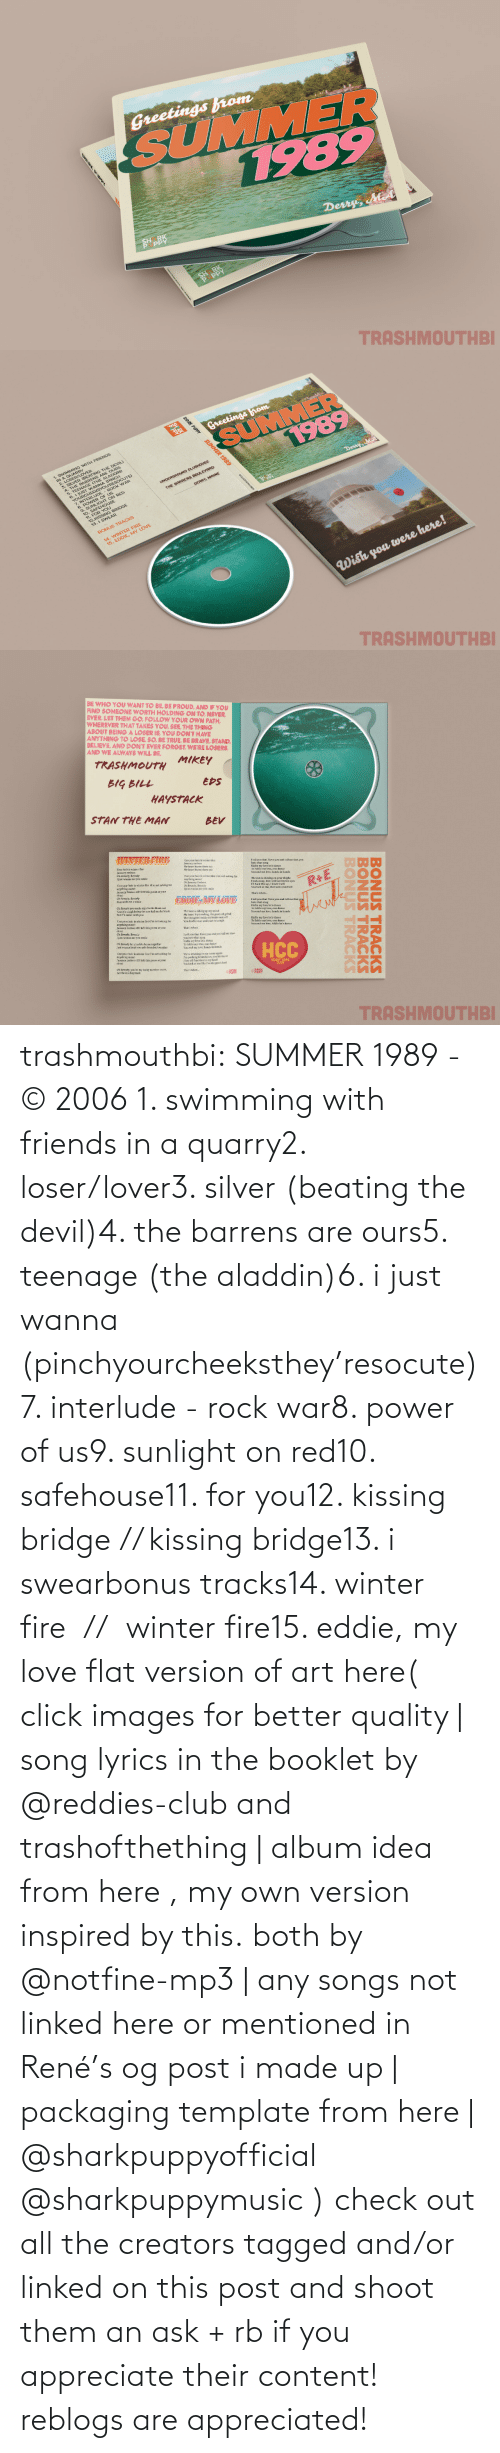 Aladdin, Click, and Club: trashmouthbi: SUMMER 1989 - © 2006 1. swimming with friends in a quarry2. loser/lover3. silver (beating the devil)4. the barrens are ours5. teenage (the aladdin)6. i just wanna (pinchyourcheeksthey'resocute)7. interlude - rock war8. power of us9. sunlight on red10. safehouse11. for you12. kissing bridge // kissing bridge13. i swearbonus tracks14. winter fire  //  winter fire15. eddie, my love flat version of art here( click images for better quality | song lyrics in the booklet by @reddies-club​ and trashofthething | album idea from here , my own version inspired by this. both by @notfine-mp3​ | any songs not linked here or mentioned in René's og post i made up | packaging template from here | @sharkpuppyofficial​ @sharkpuppymusic​ ) check out all the creators tagged and/or linked on this post and shoot them an ask + rb if you appreciate their content! reblogs are appreciated!